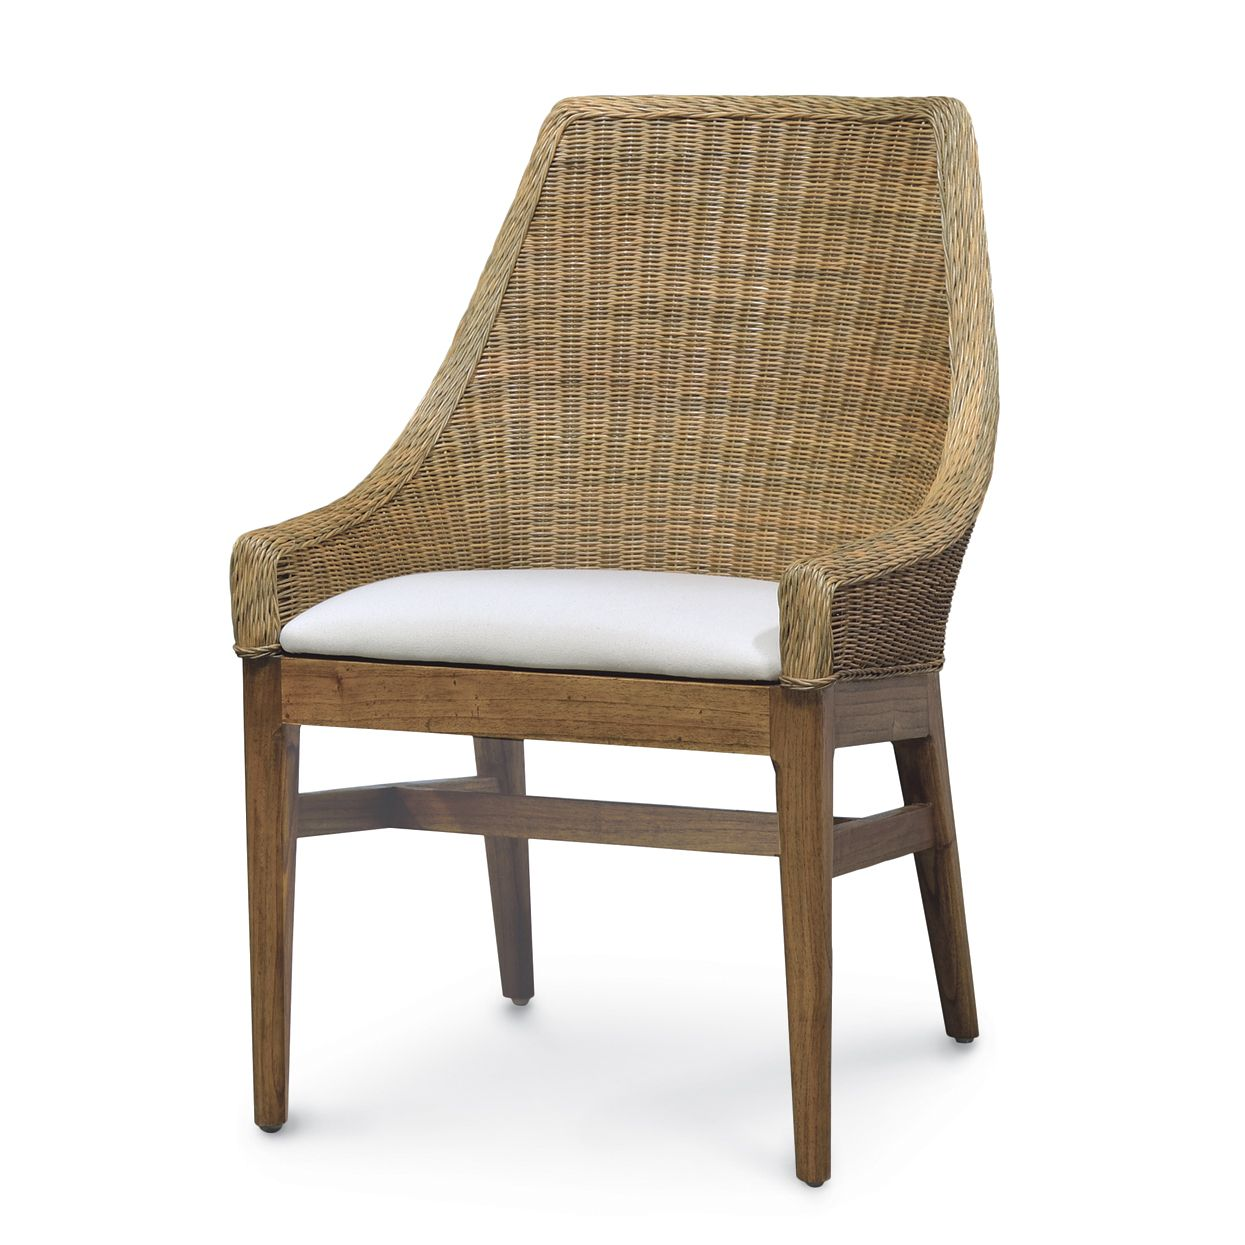 Seagrass Dining Chair With Seat Cushion / Pair